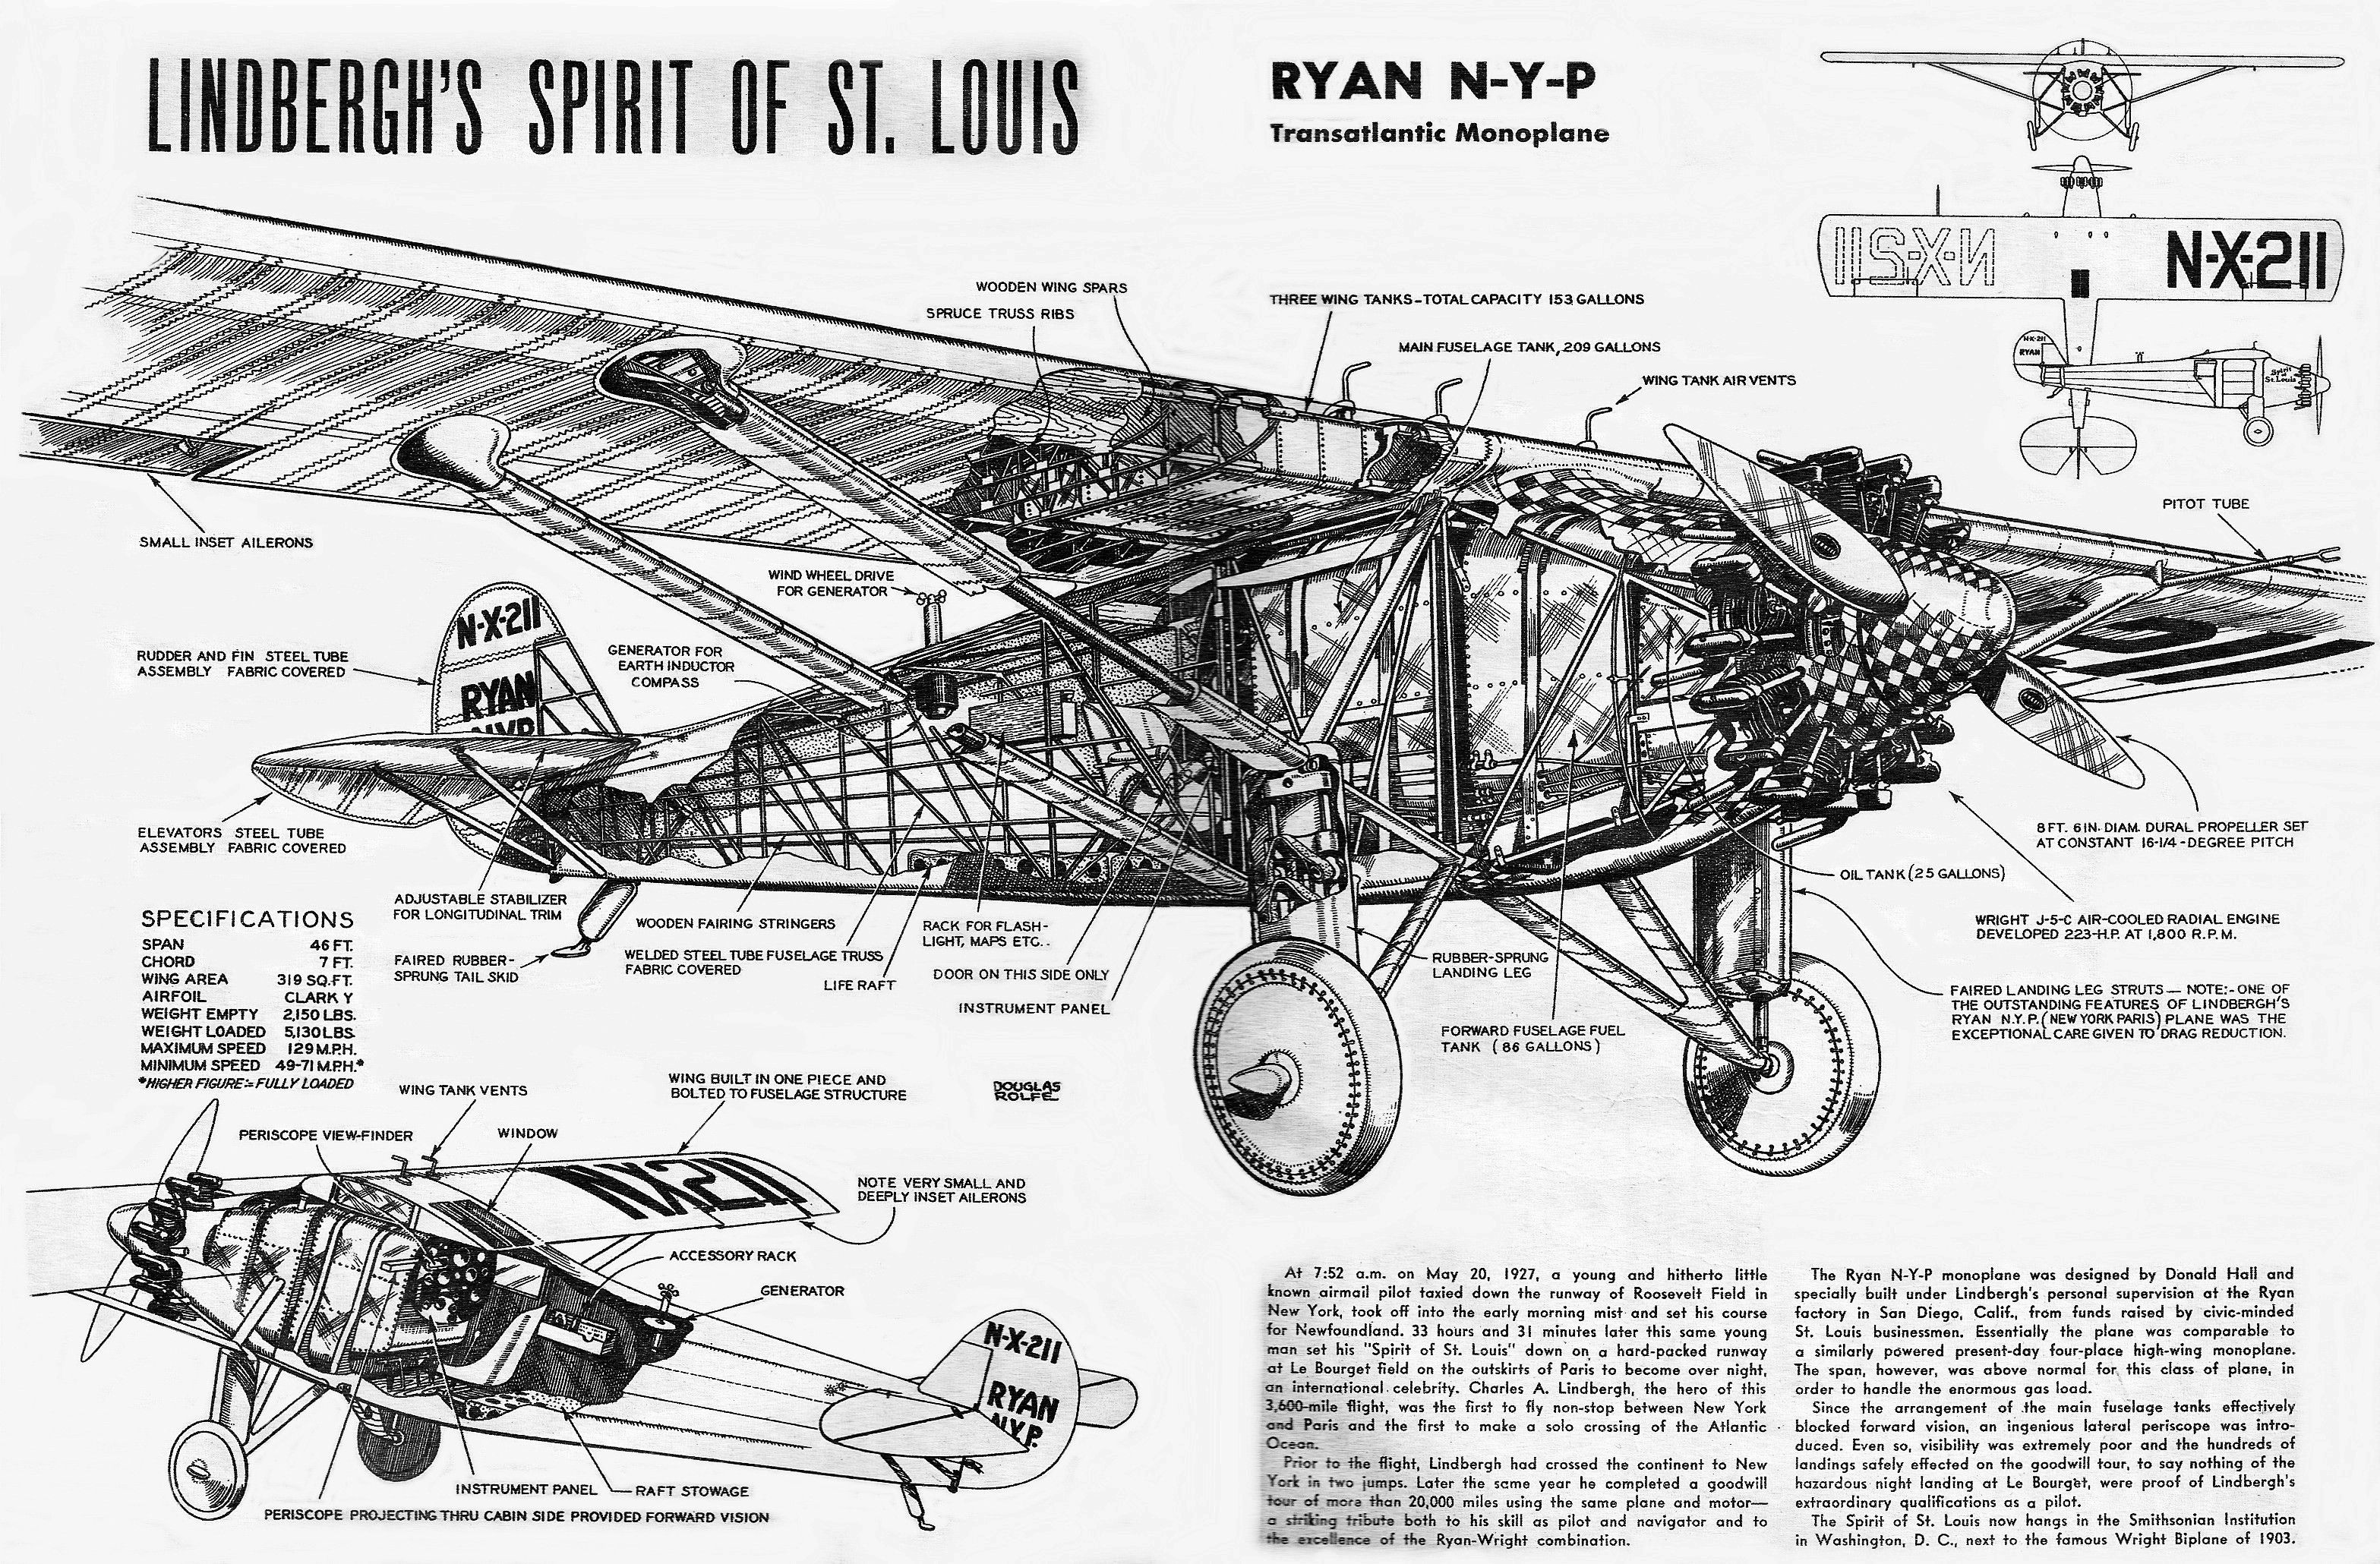 Cutaway plan of the Spirit of St. Louis